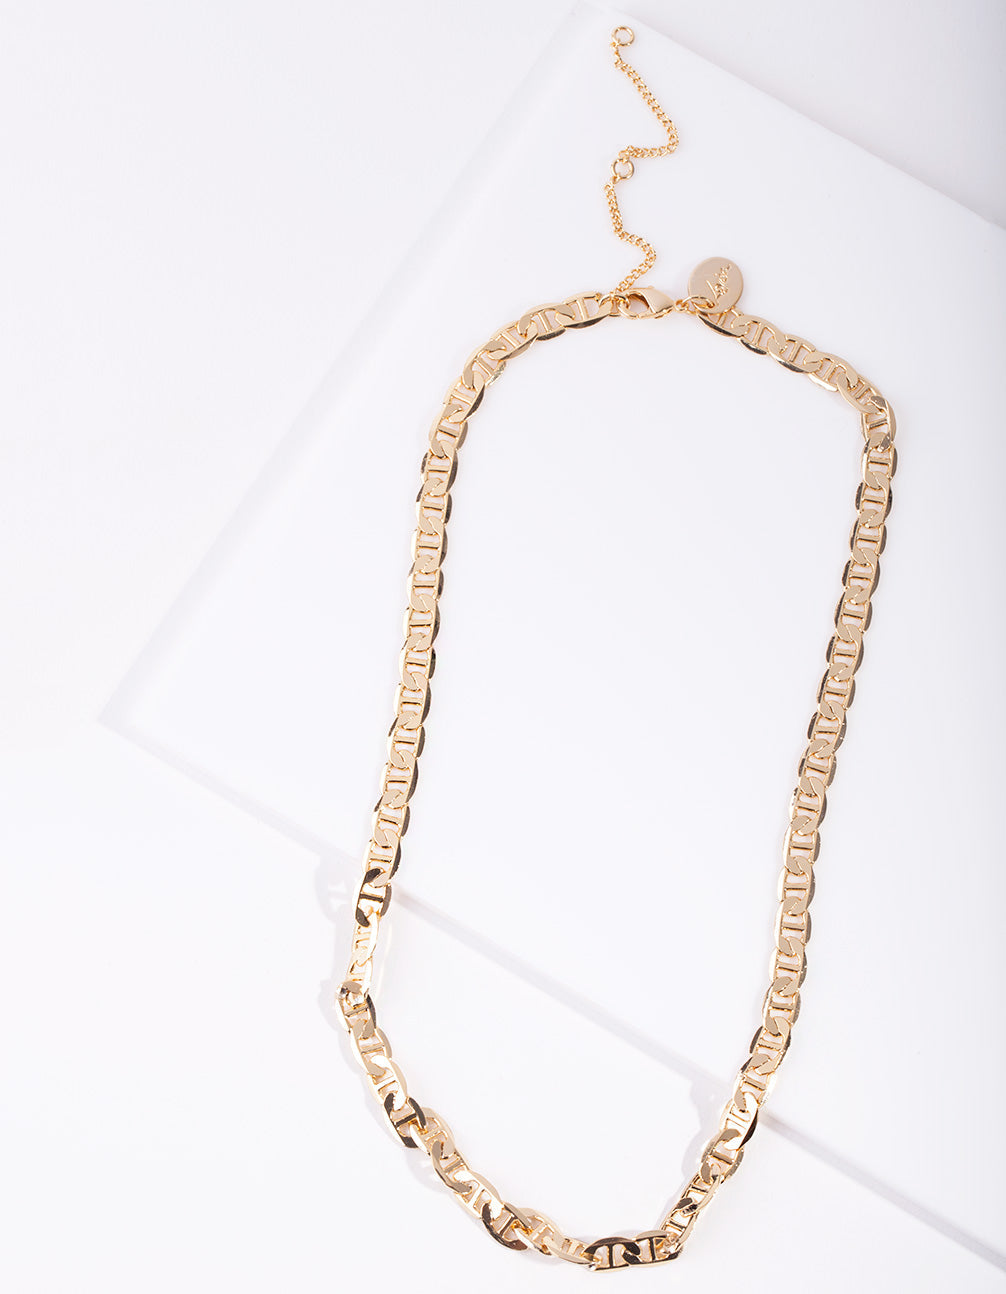 Real Gold Plated Thick Chain Necklace